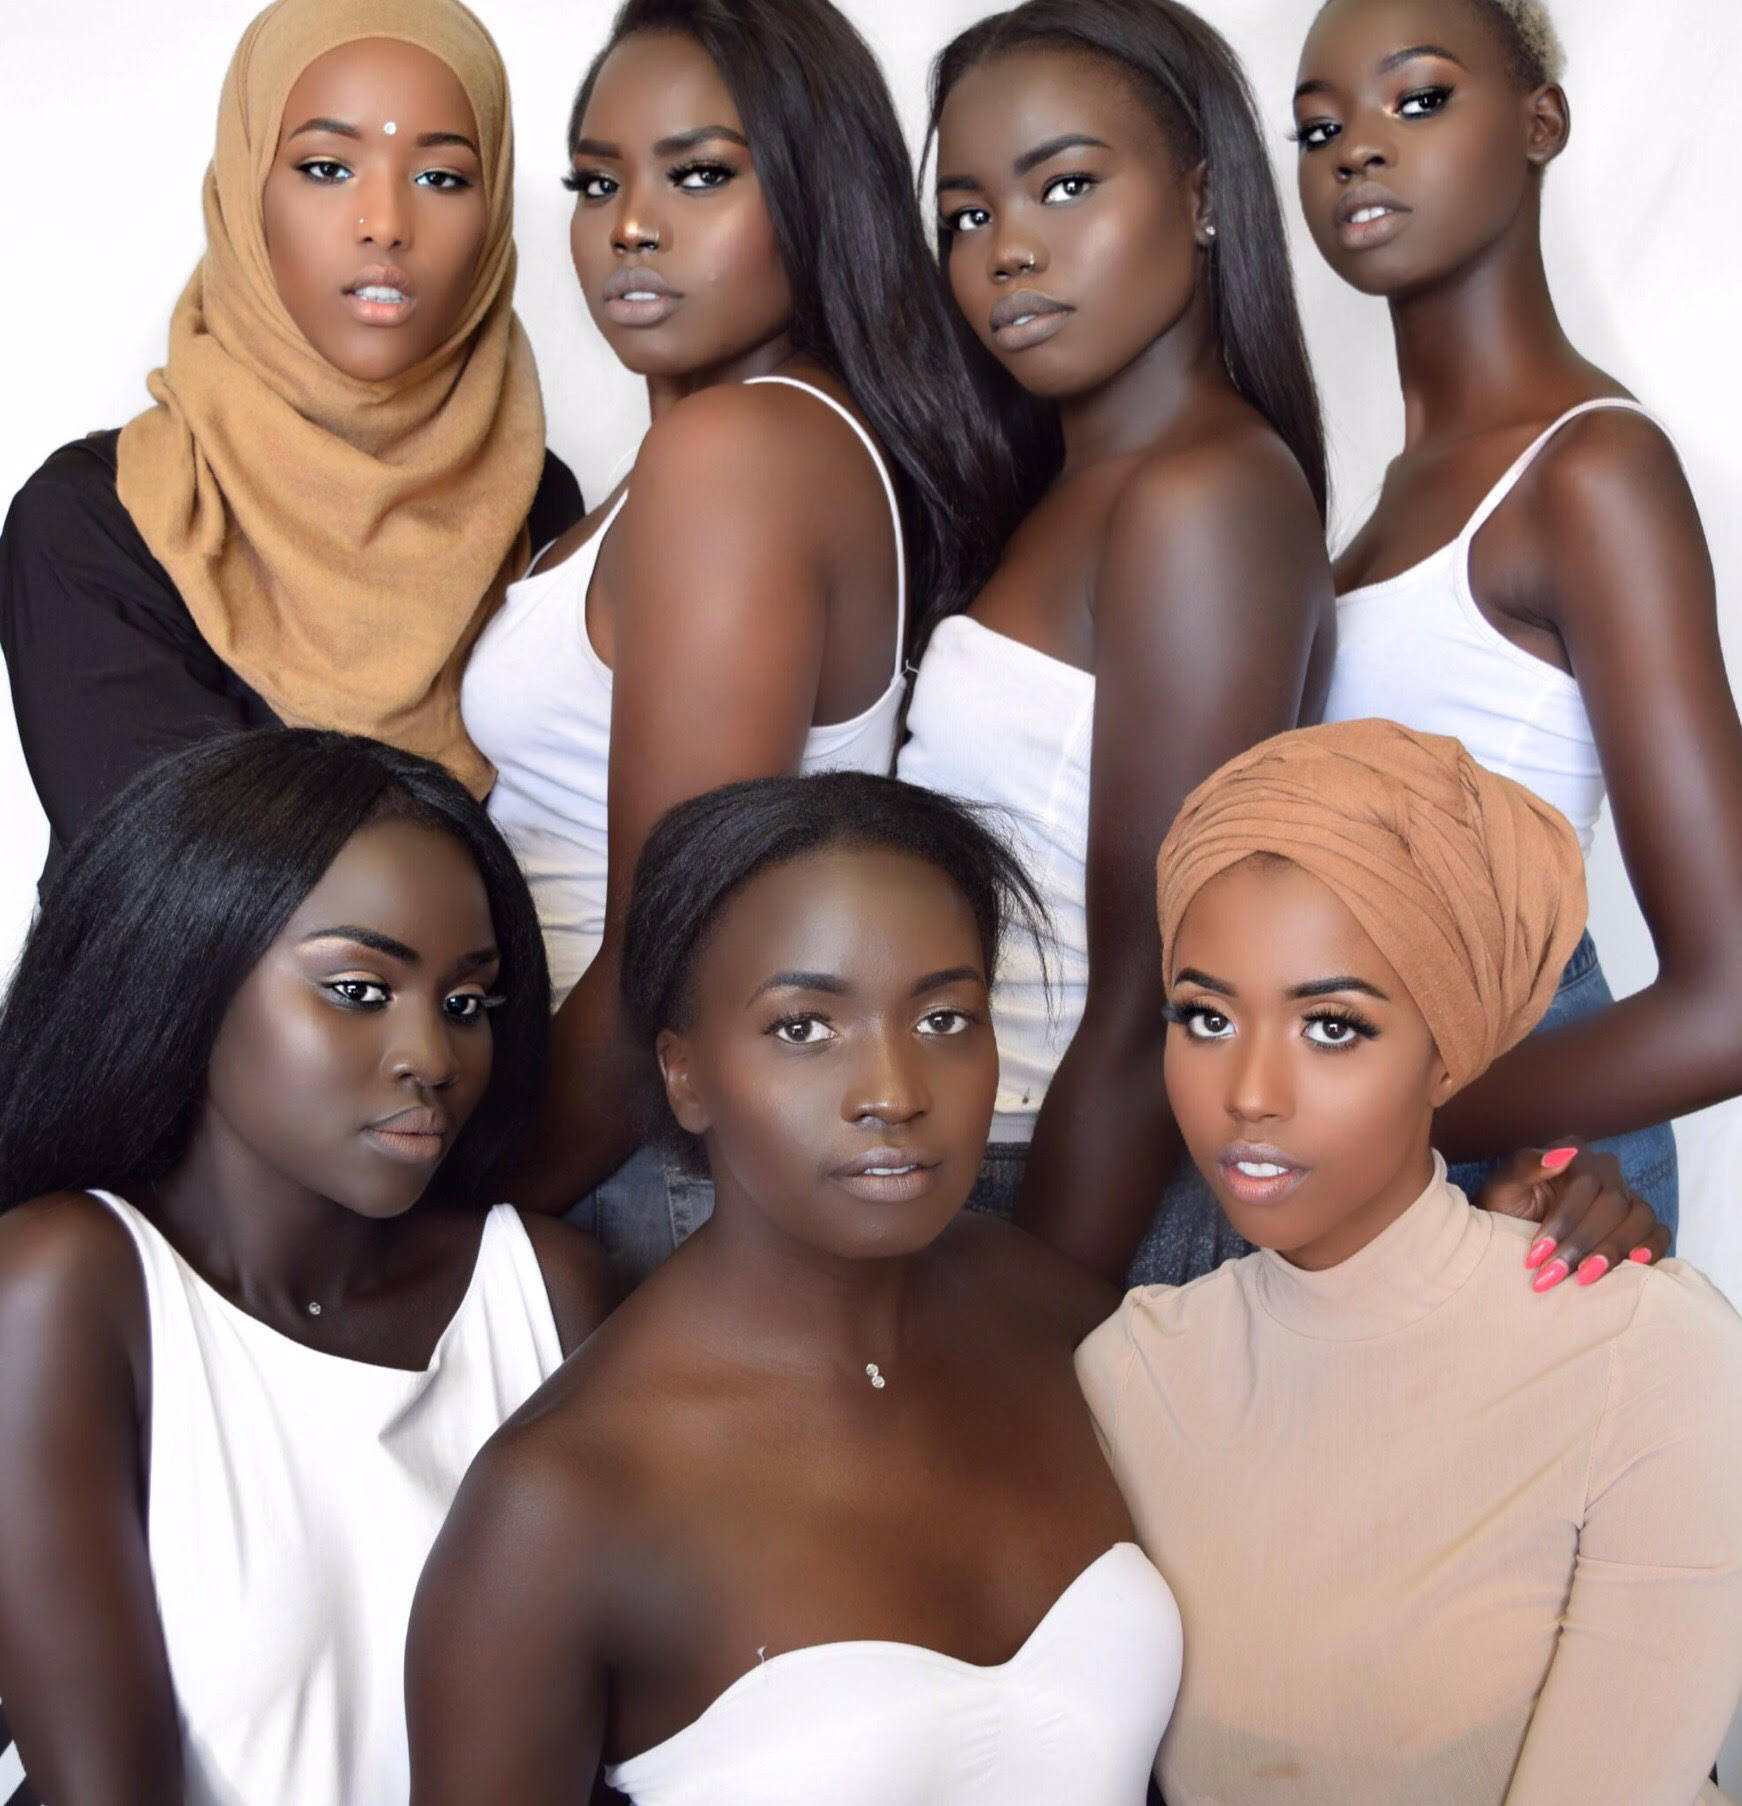 Image provided by Nyedouth (Destiny) Matuet (second-to-the-left on the top row.)